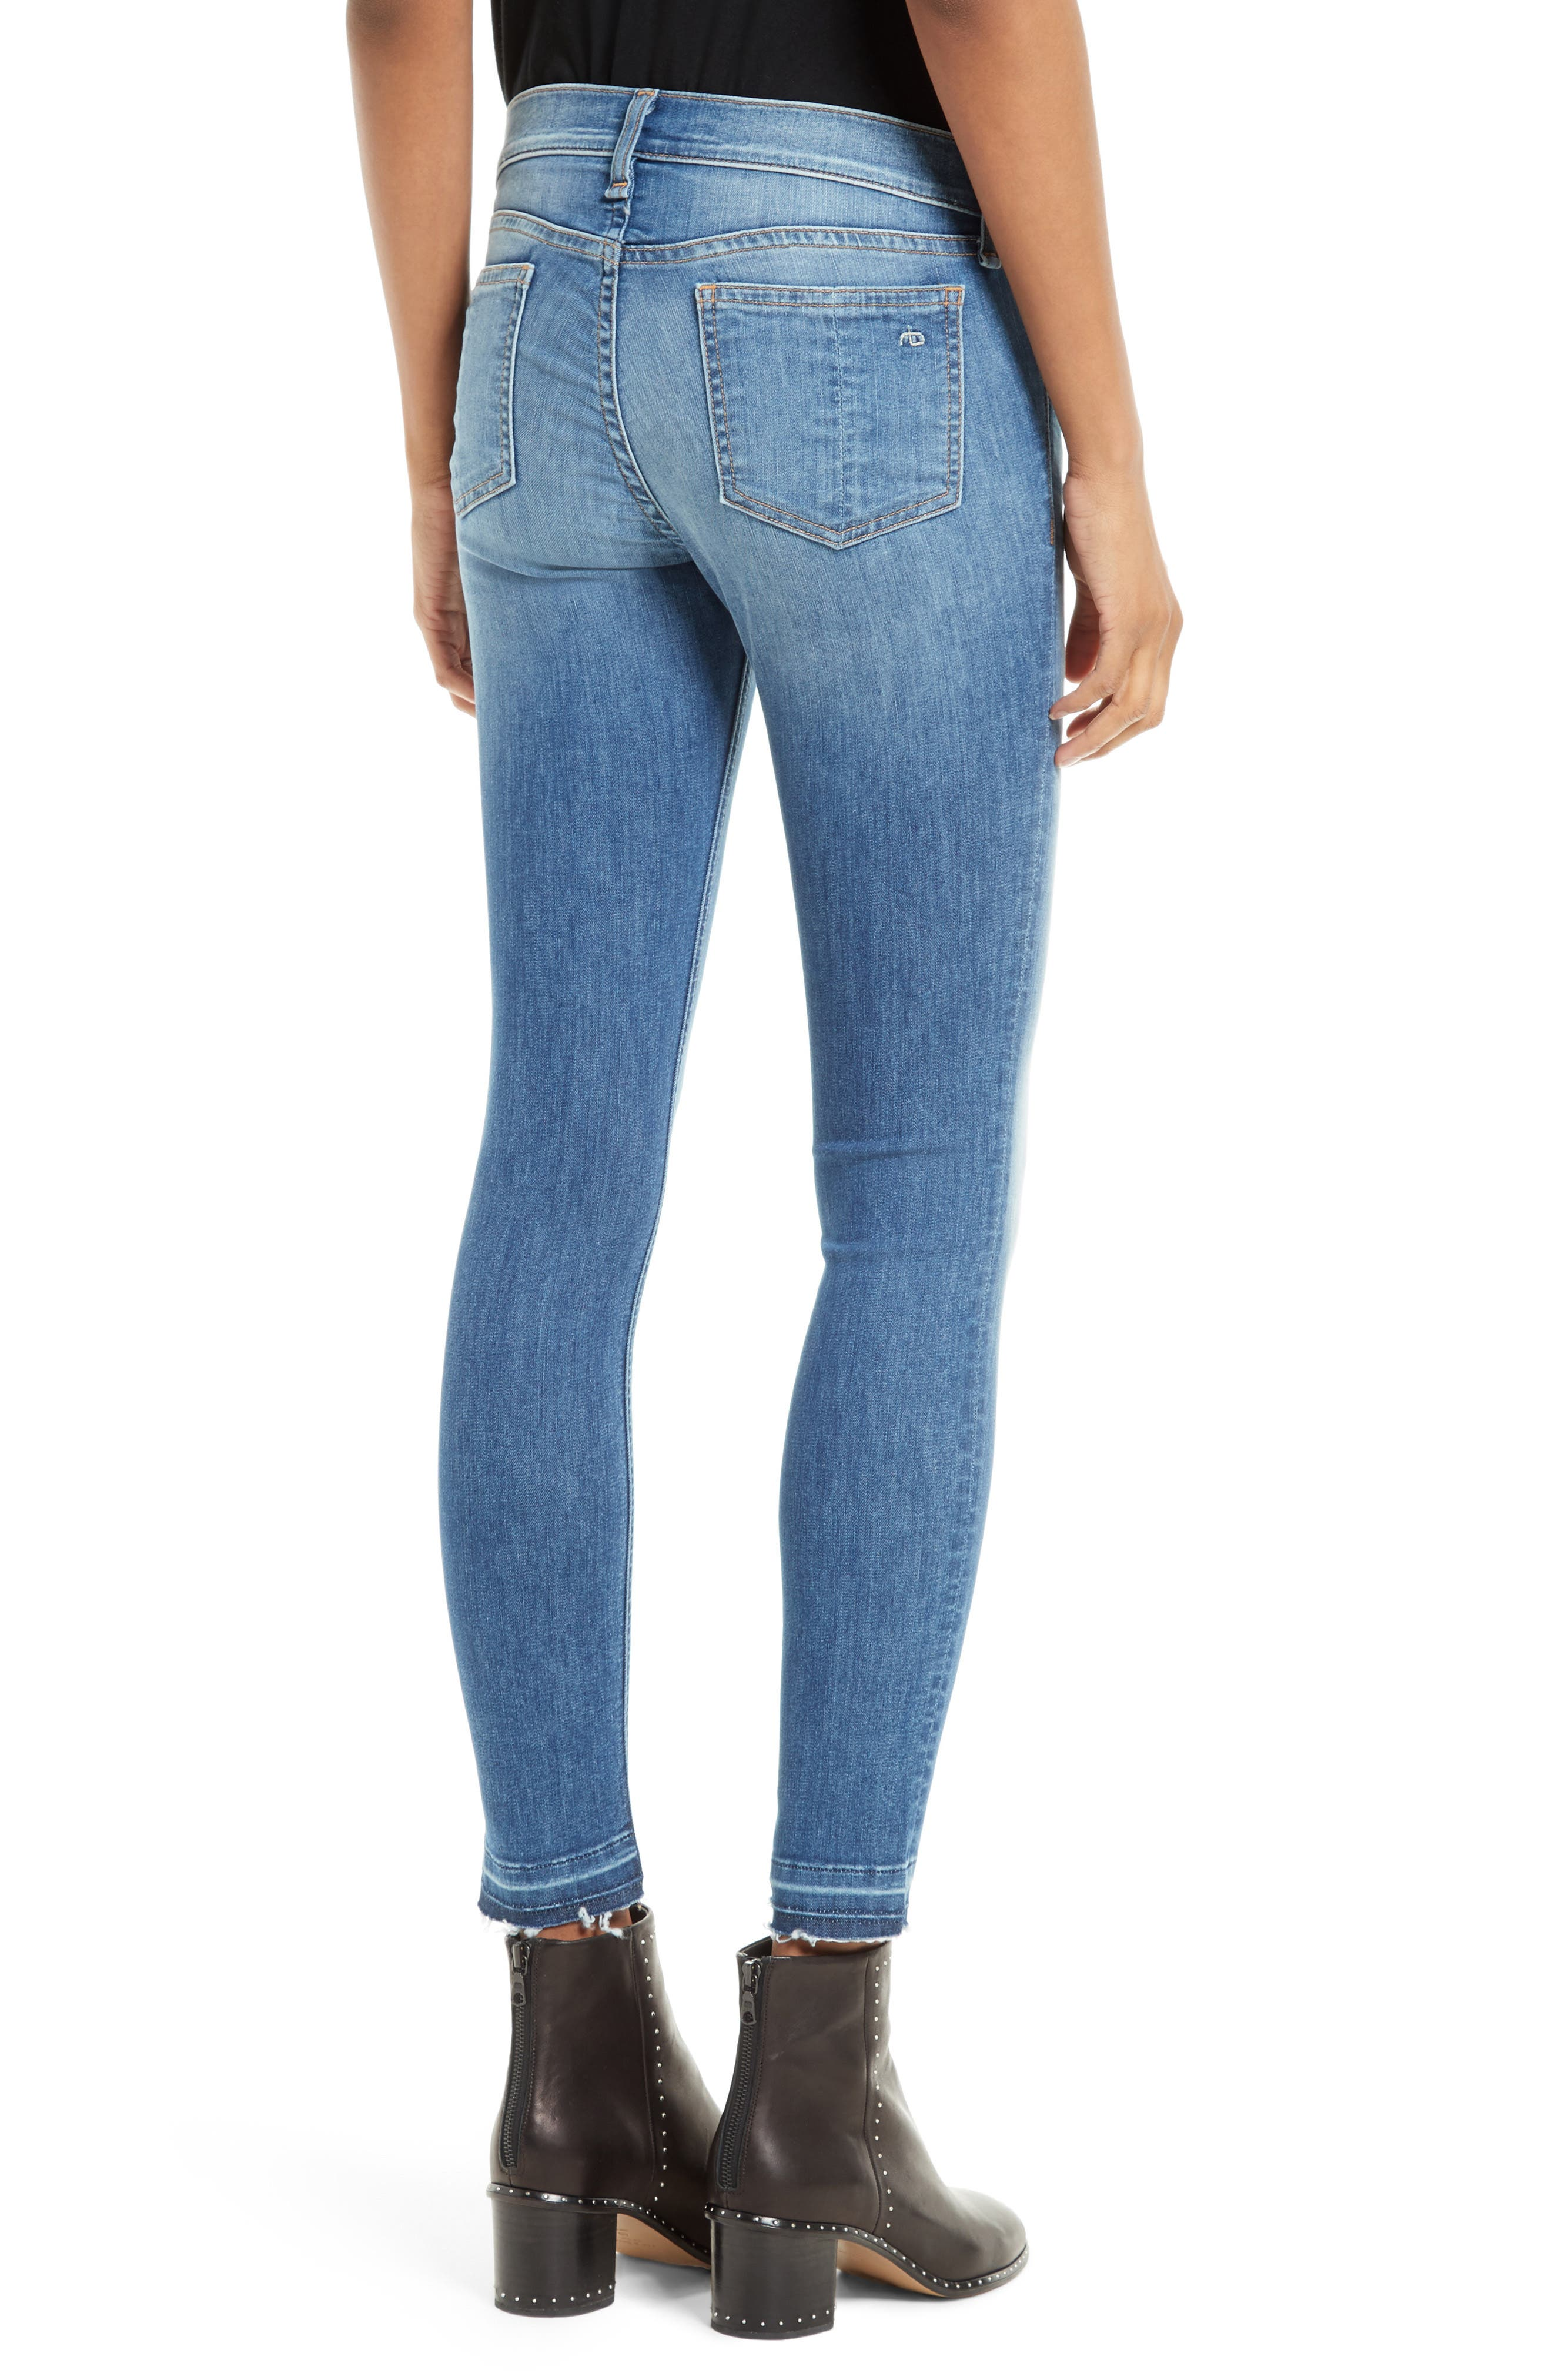 Capri Skinny Jeans,                             Alternate thumbnail 2, color,                             CLEAN LILLY DALE